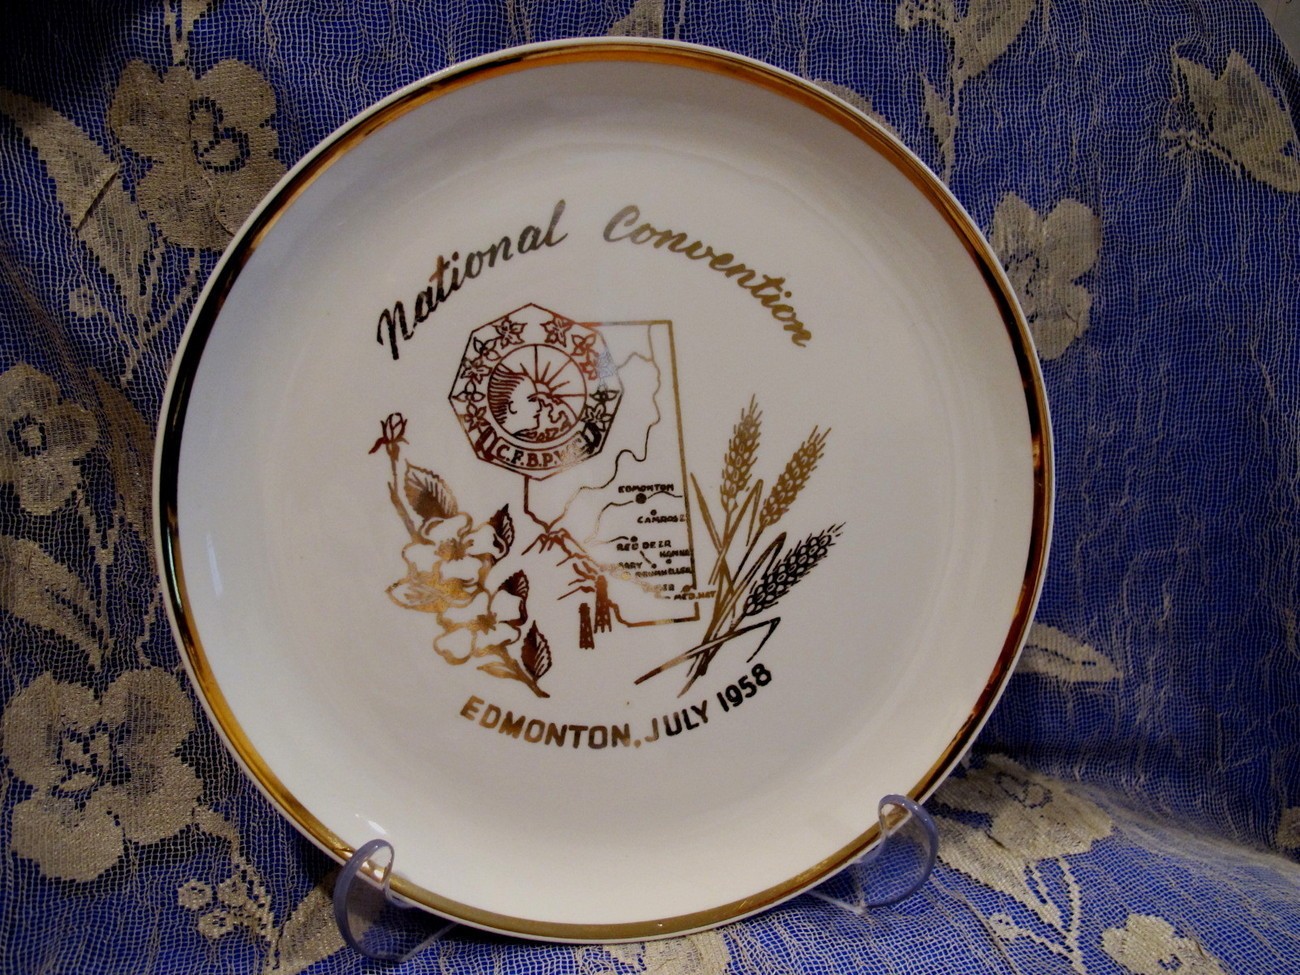 Canadian Federation of Business and Professional Womens Club Souvenir Plate '58